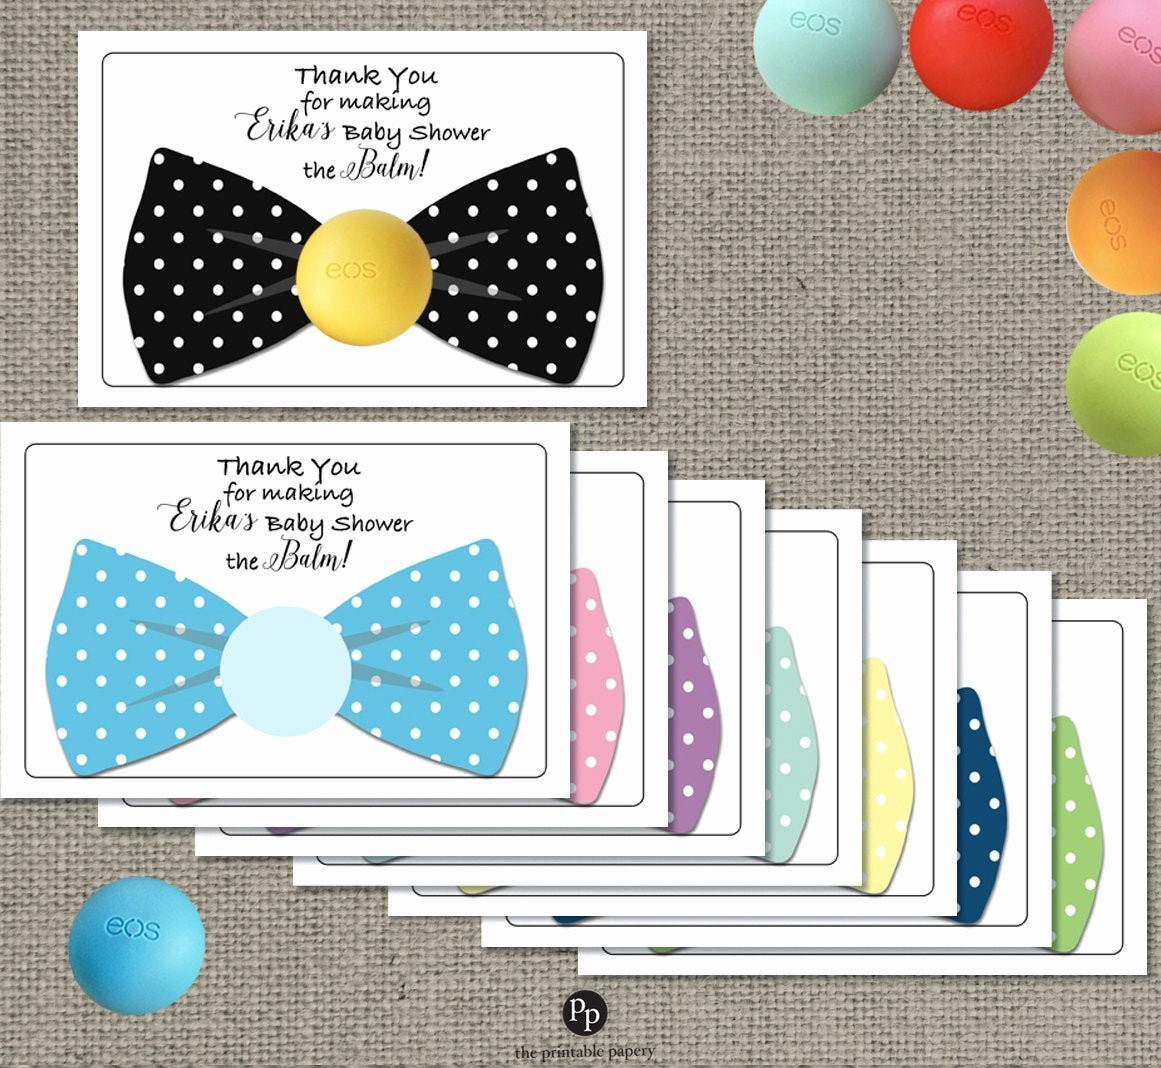 Baby Shower Gift Tags Awesome Bow Tie Baby Shower Gift Tags for Eos Lip Balm Ts Thank